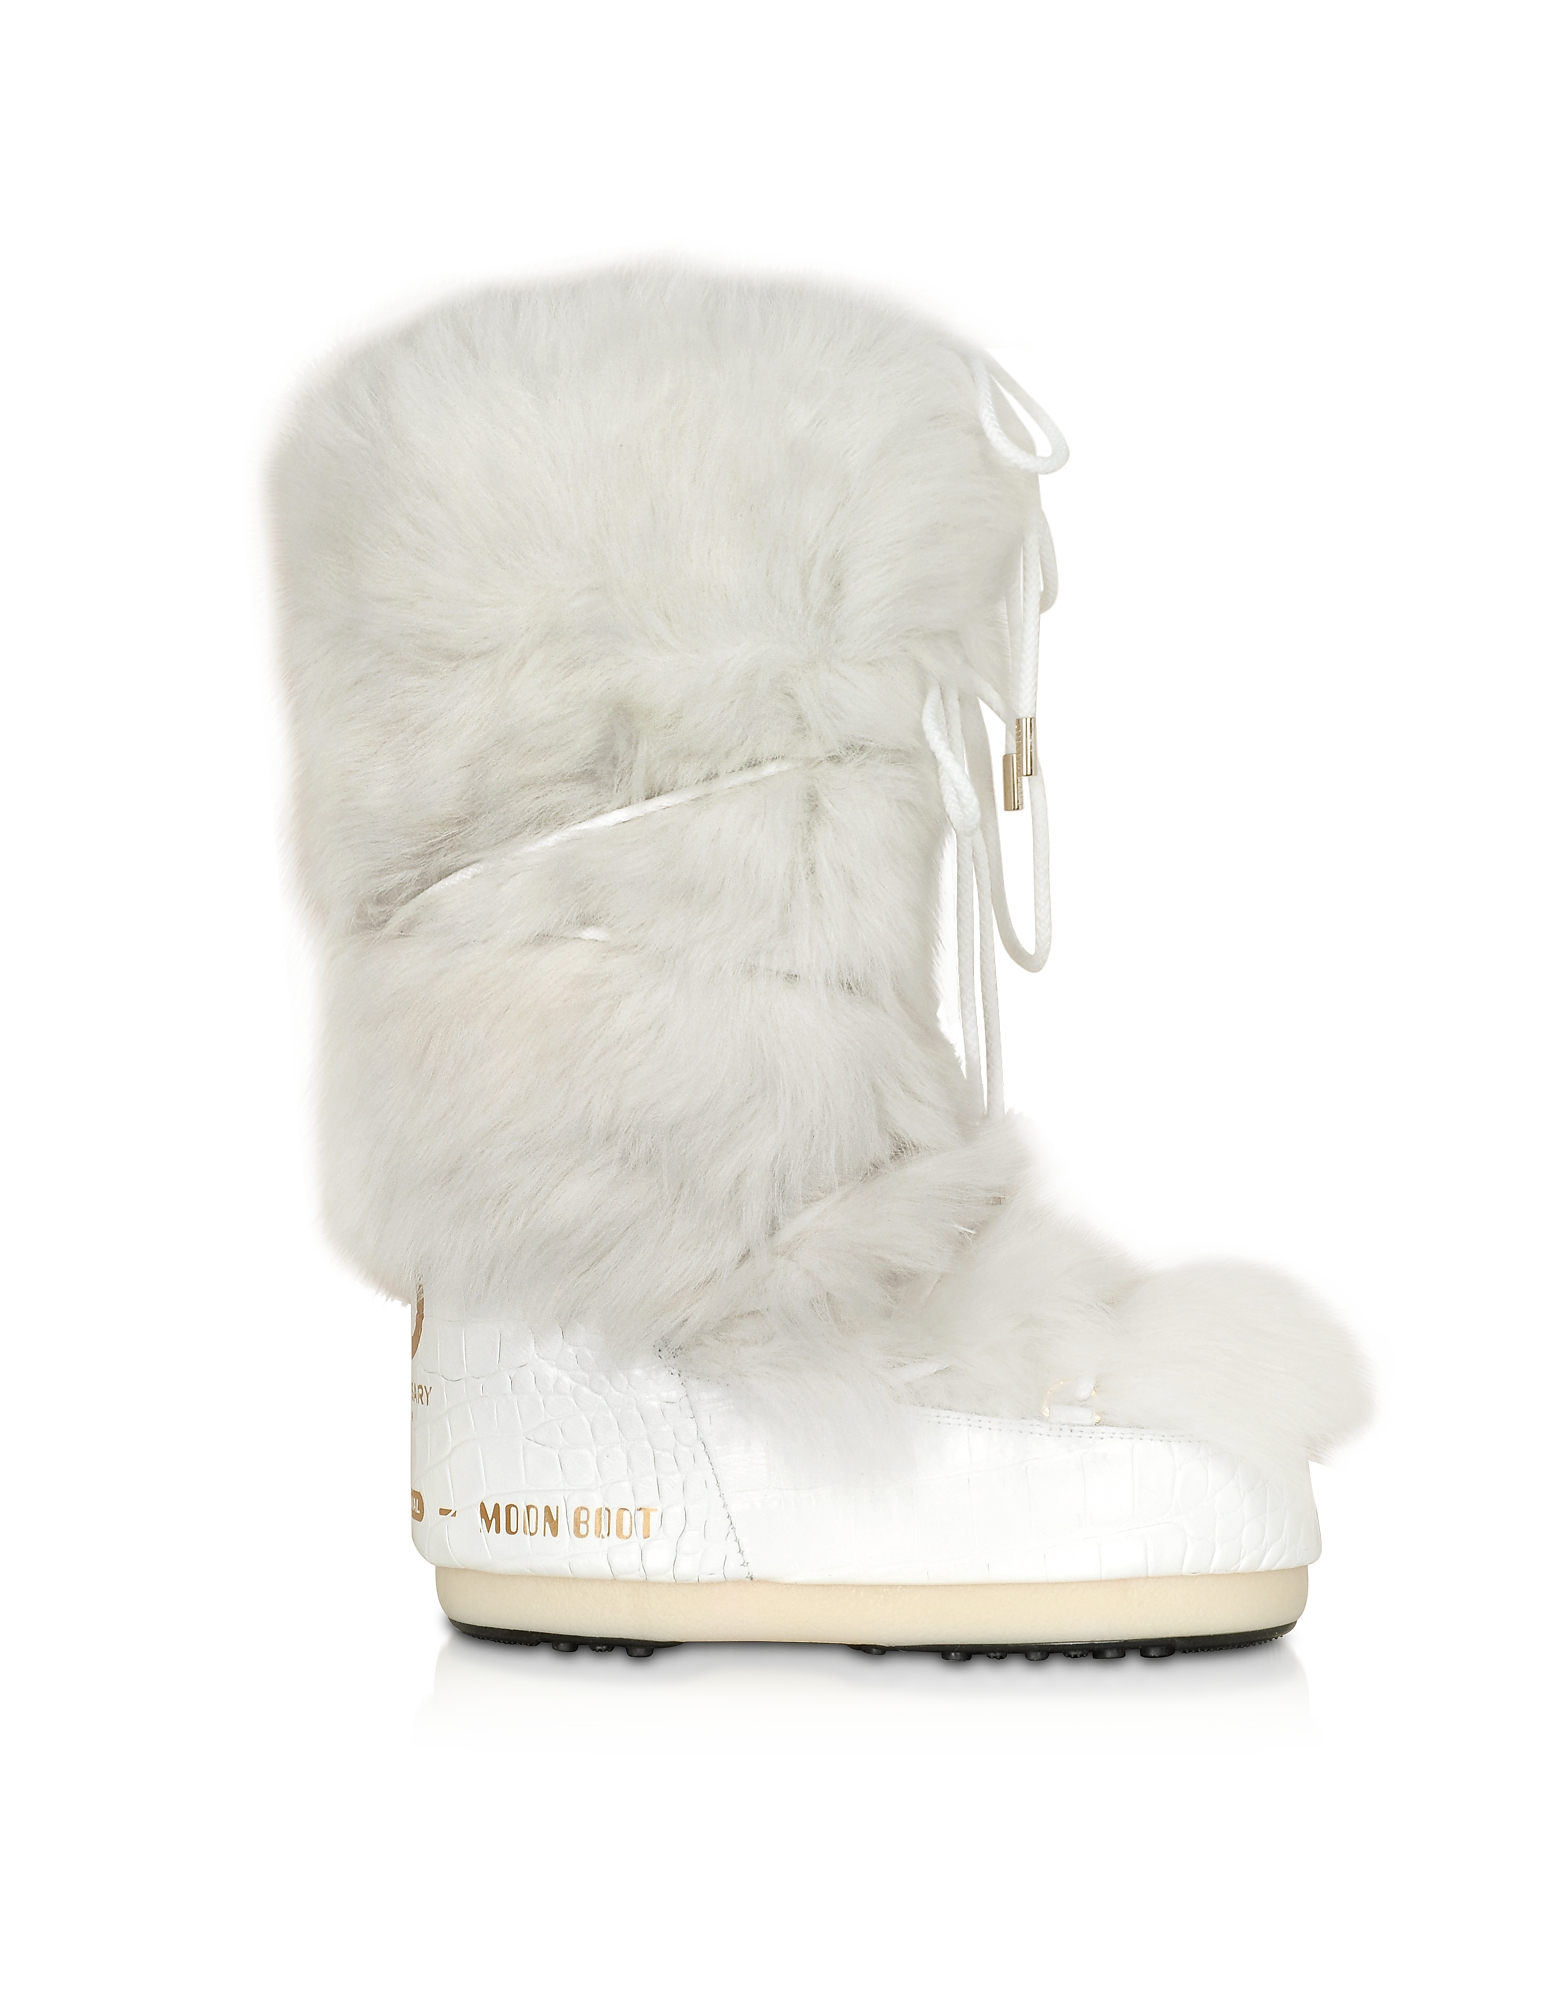 Moon Boot Designer Shoes, Classic 50 White Shearling Boots